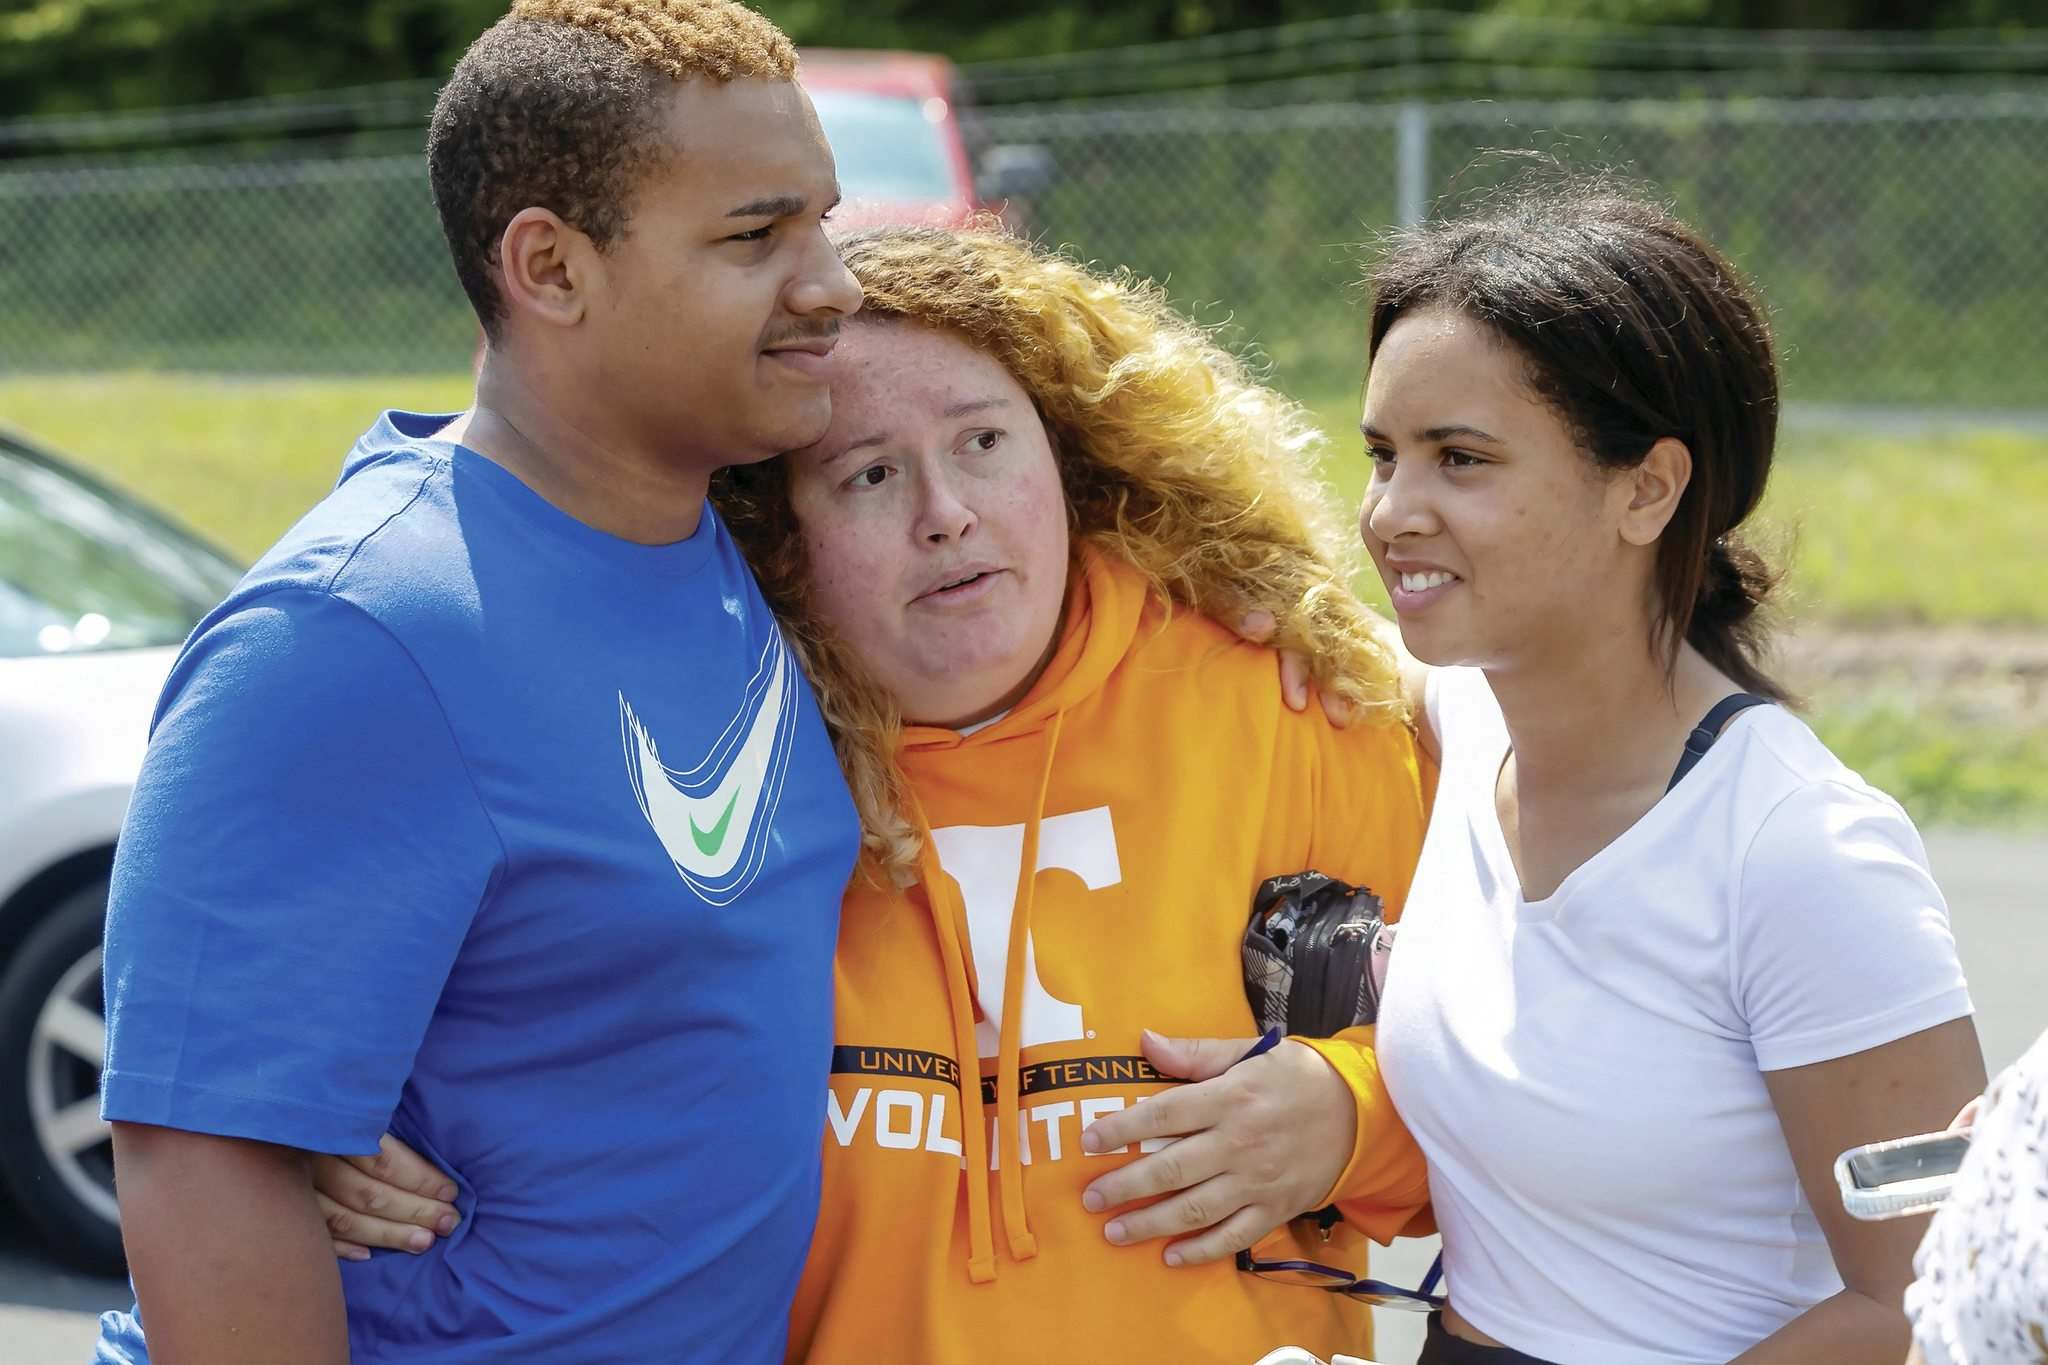 Rhonda Lawson (centre) hugs her children, Donovan and Madison, as she describes to local media the moment she received the phone call of a possible active shooter at Volunteer High School in Church Hill, Tenn., on Aug. 10. (Larry N. Souders / The Associated Press files)